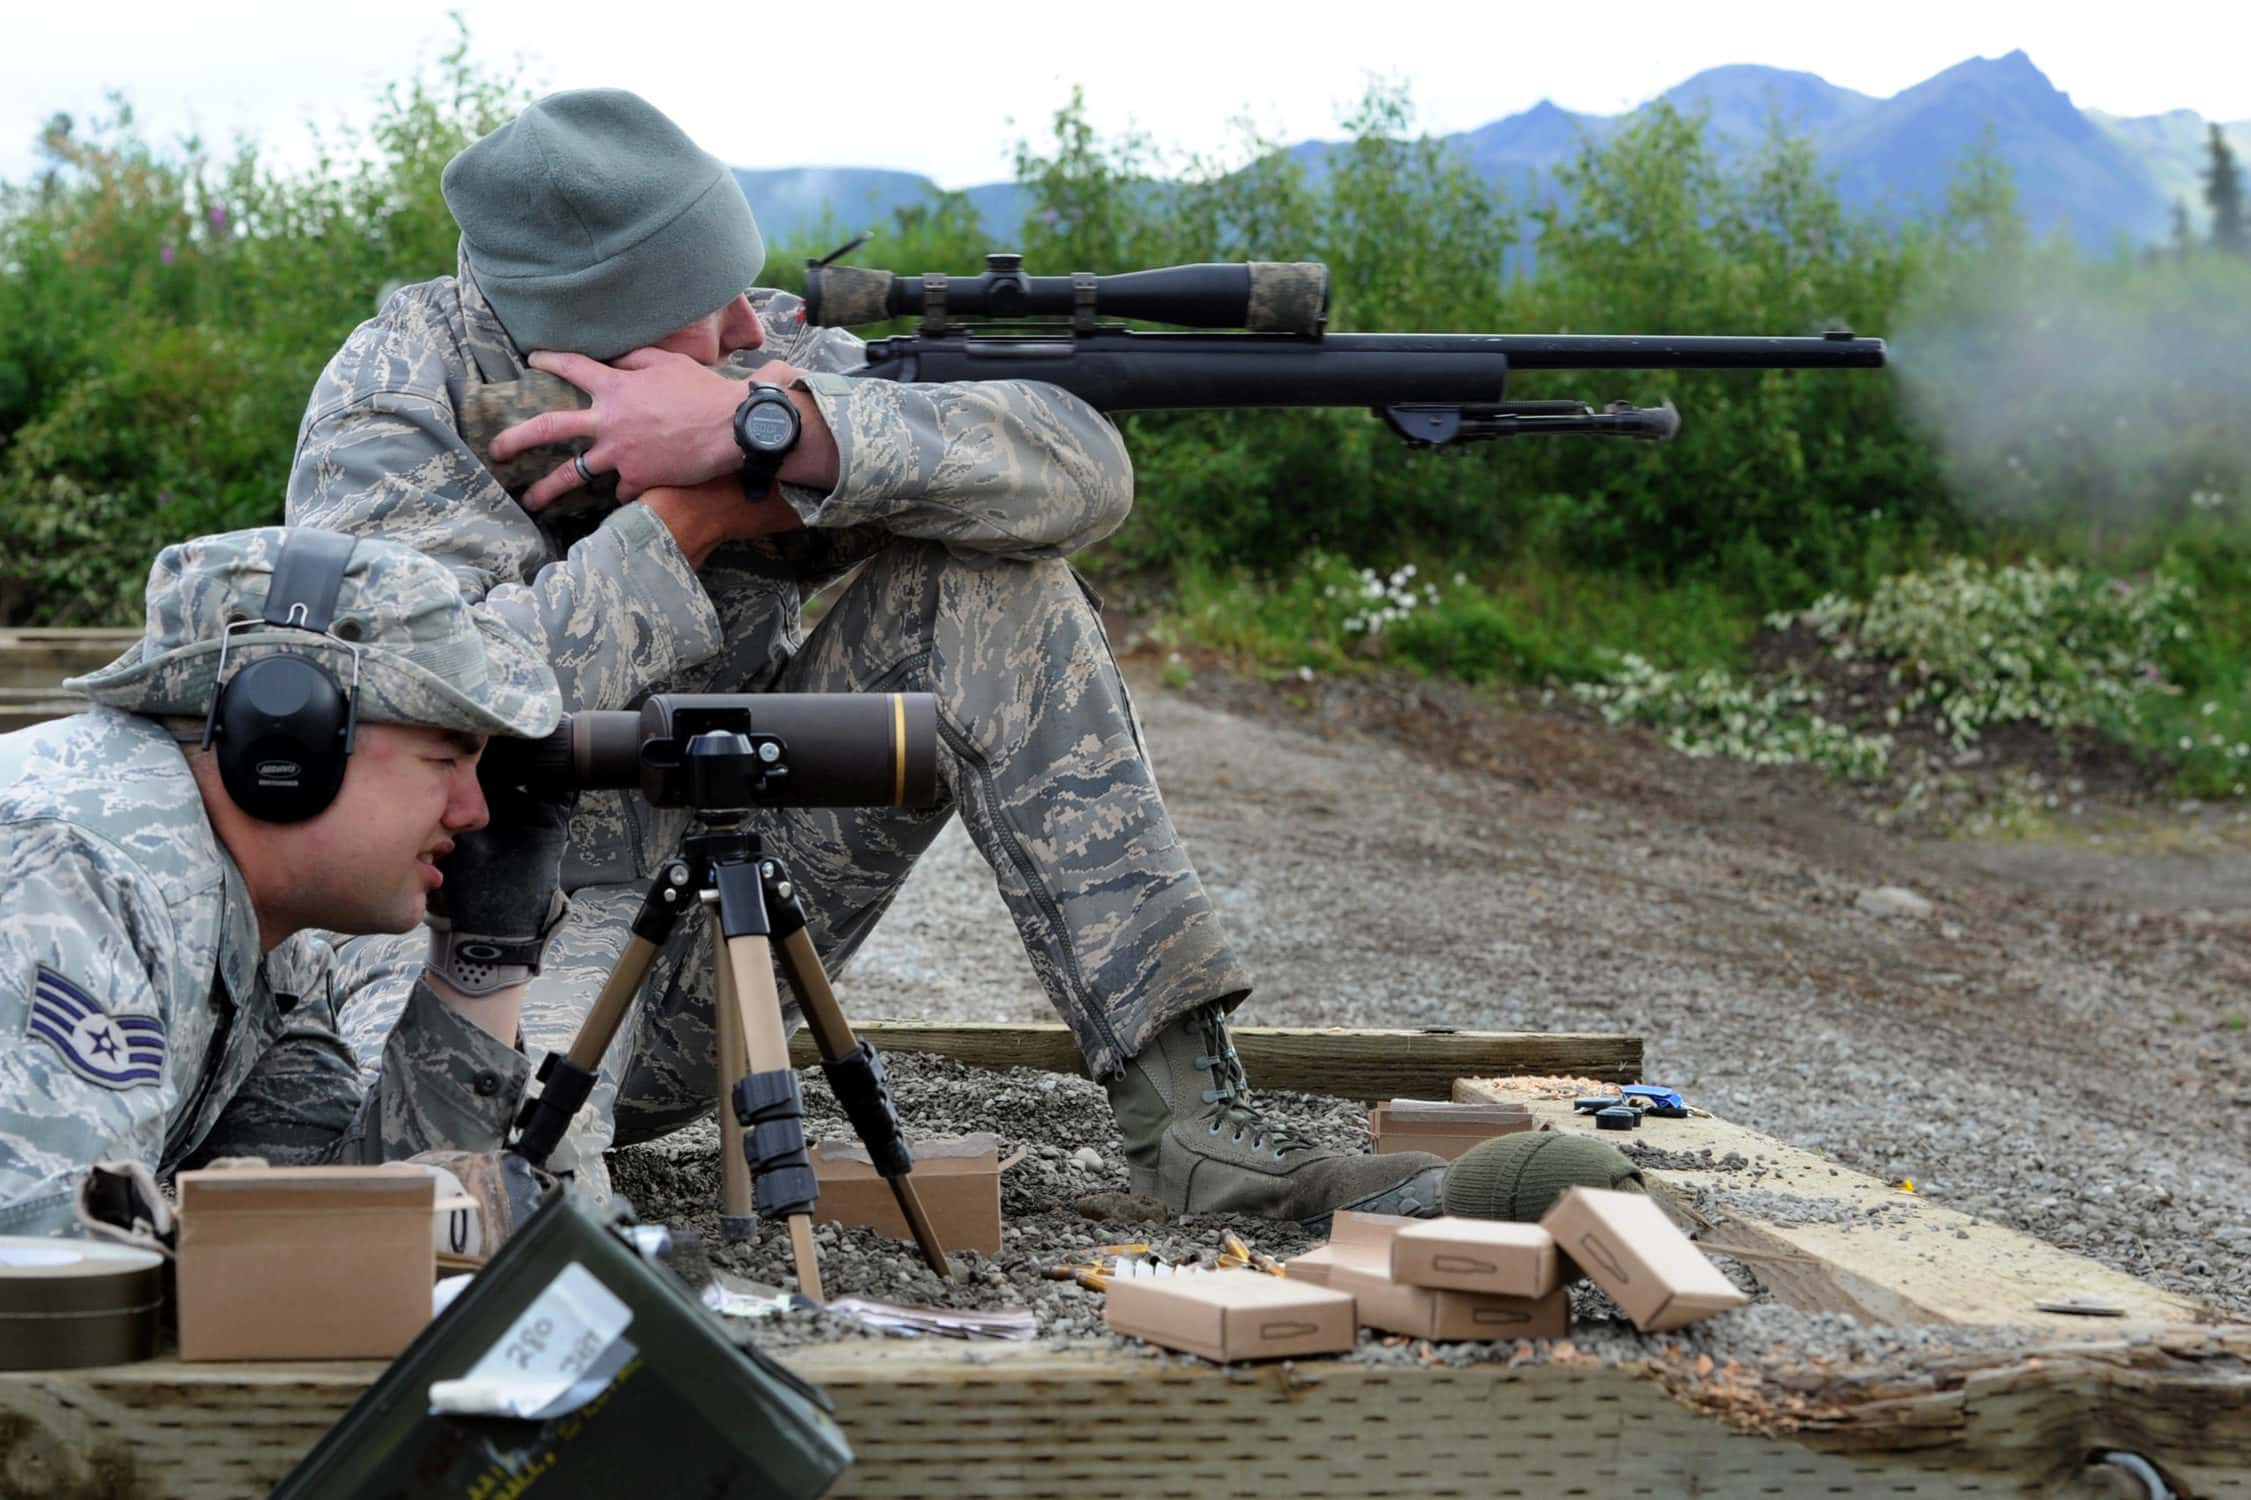 Sniper with Spotter